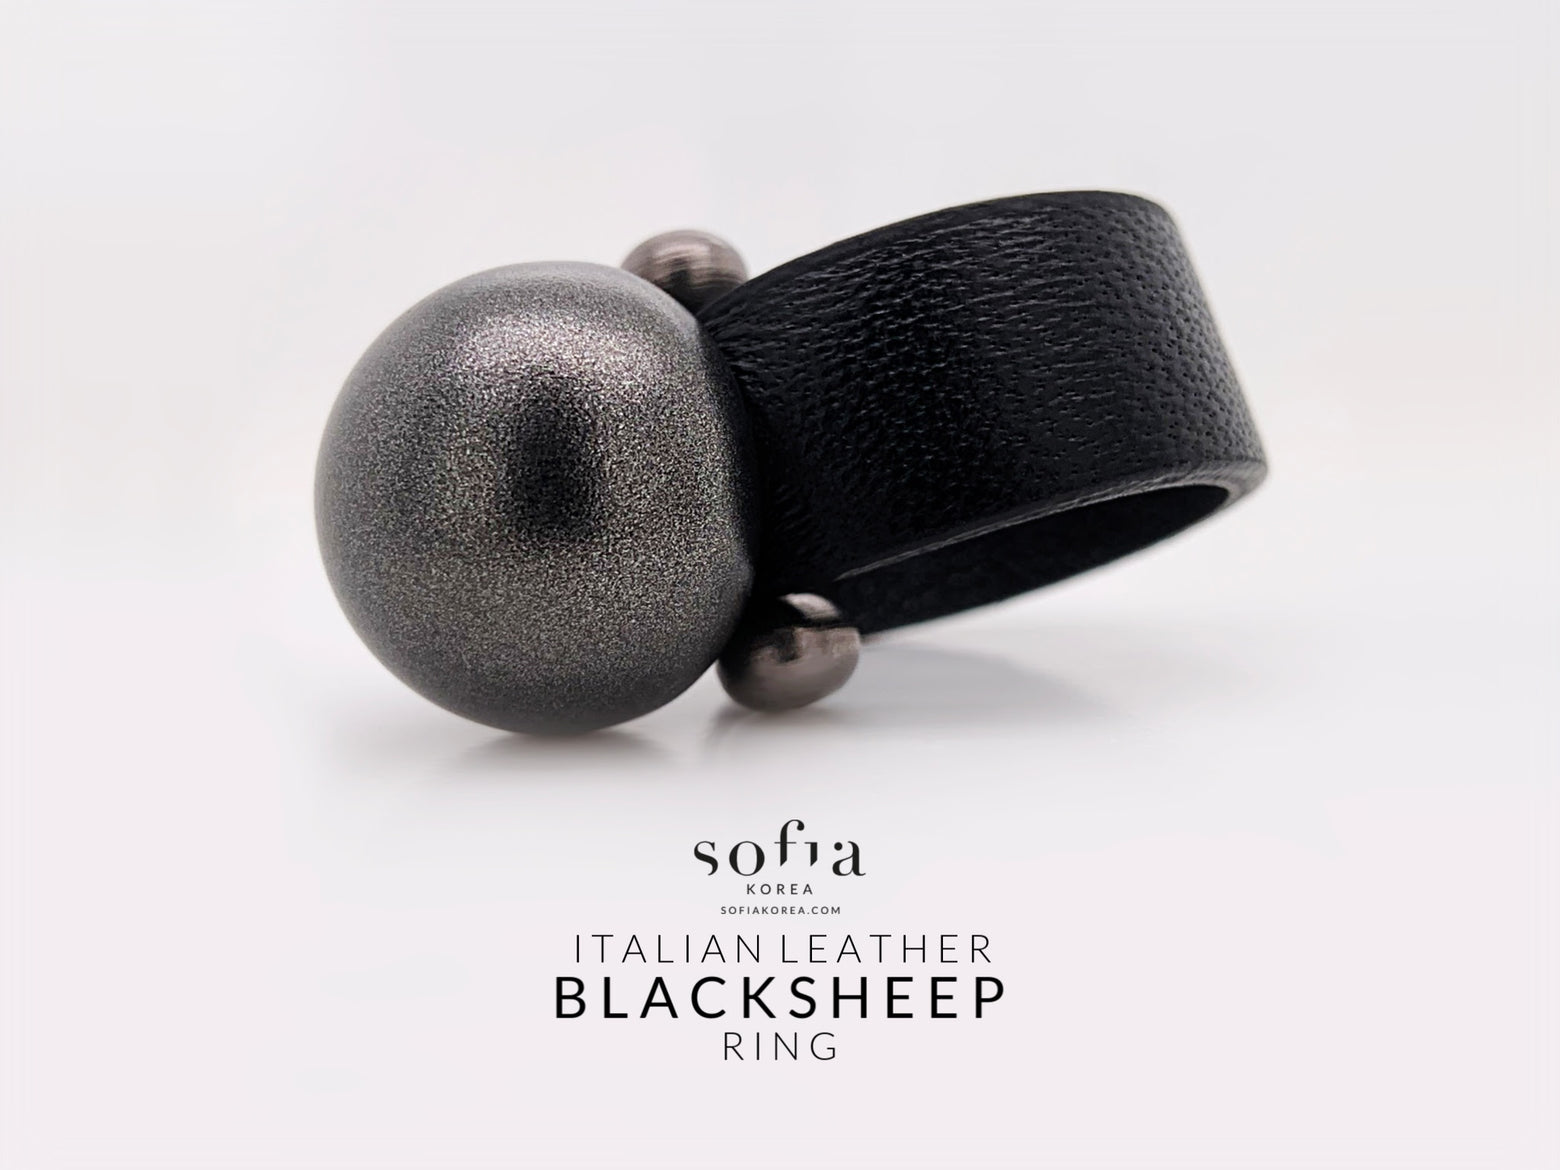 Blacksheep Ring - Sofiakorea